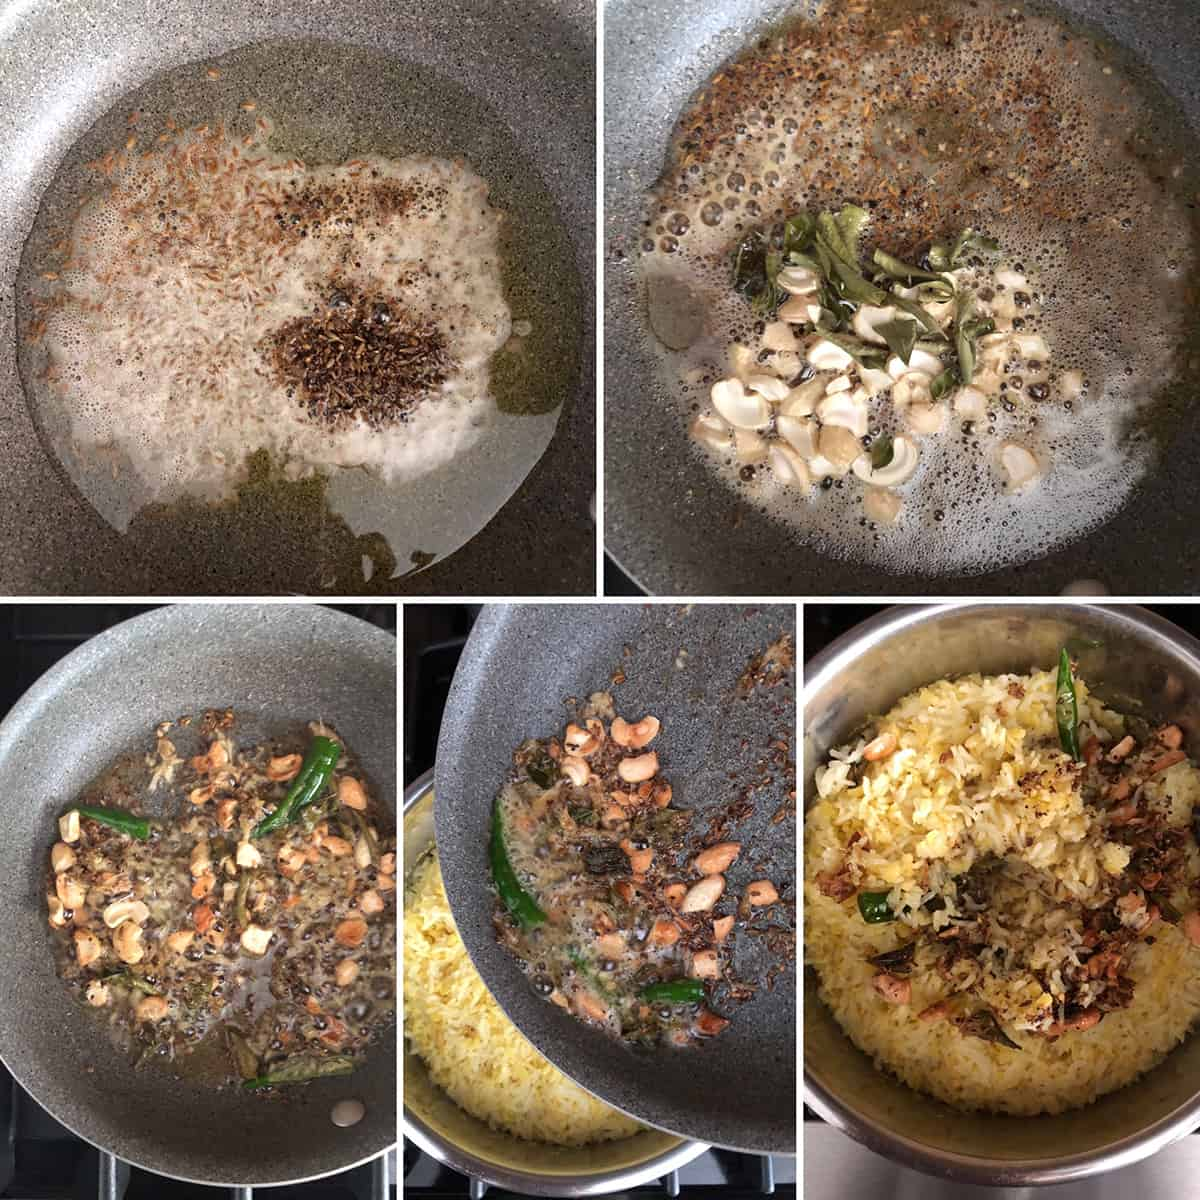 Step by step photos showing the making tempering and adding to pongal